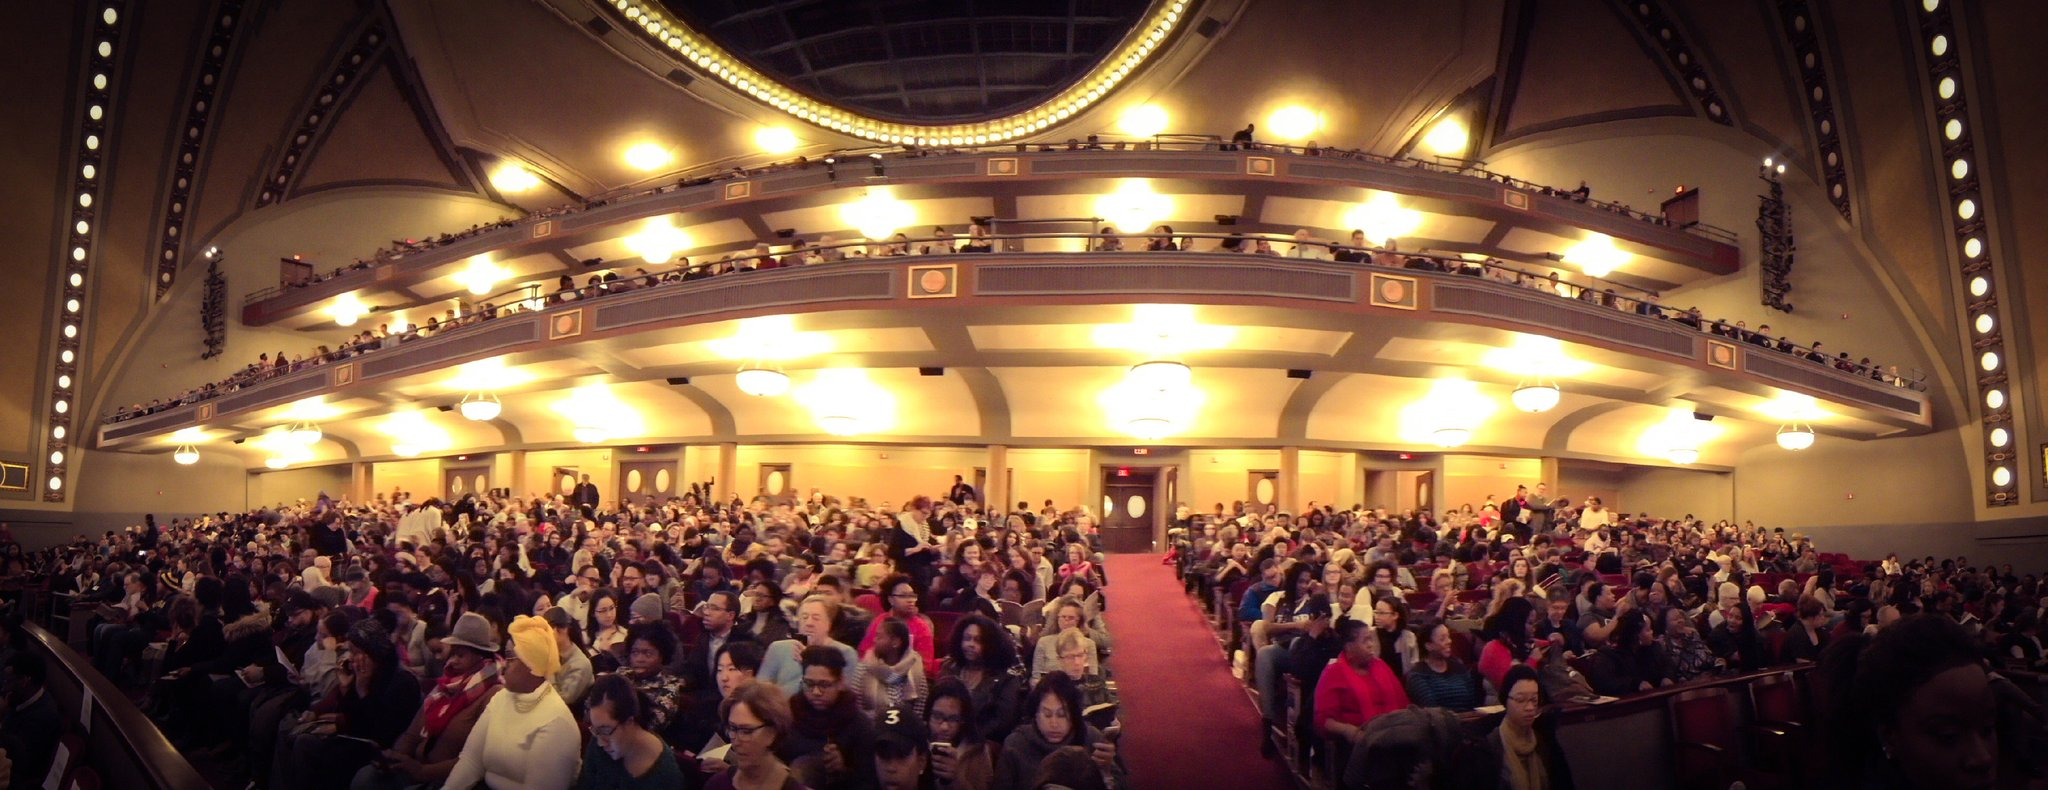 Sights from #UMichMLKDay2017 at Hill Auditorium https://t.co/bhIdXbMdzy